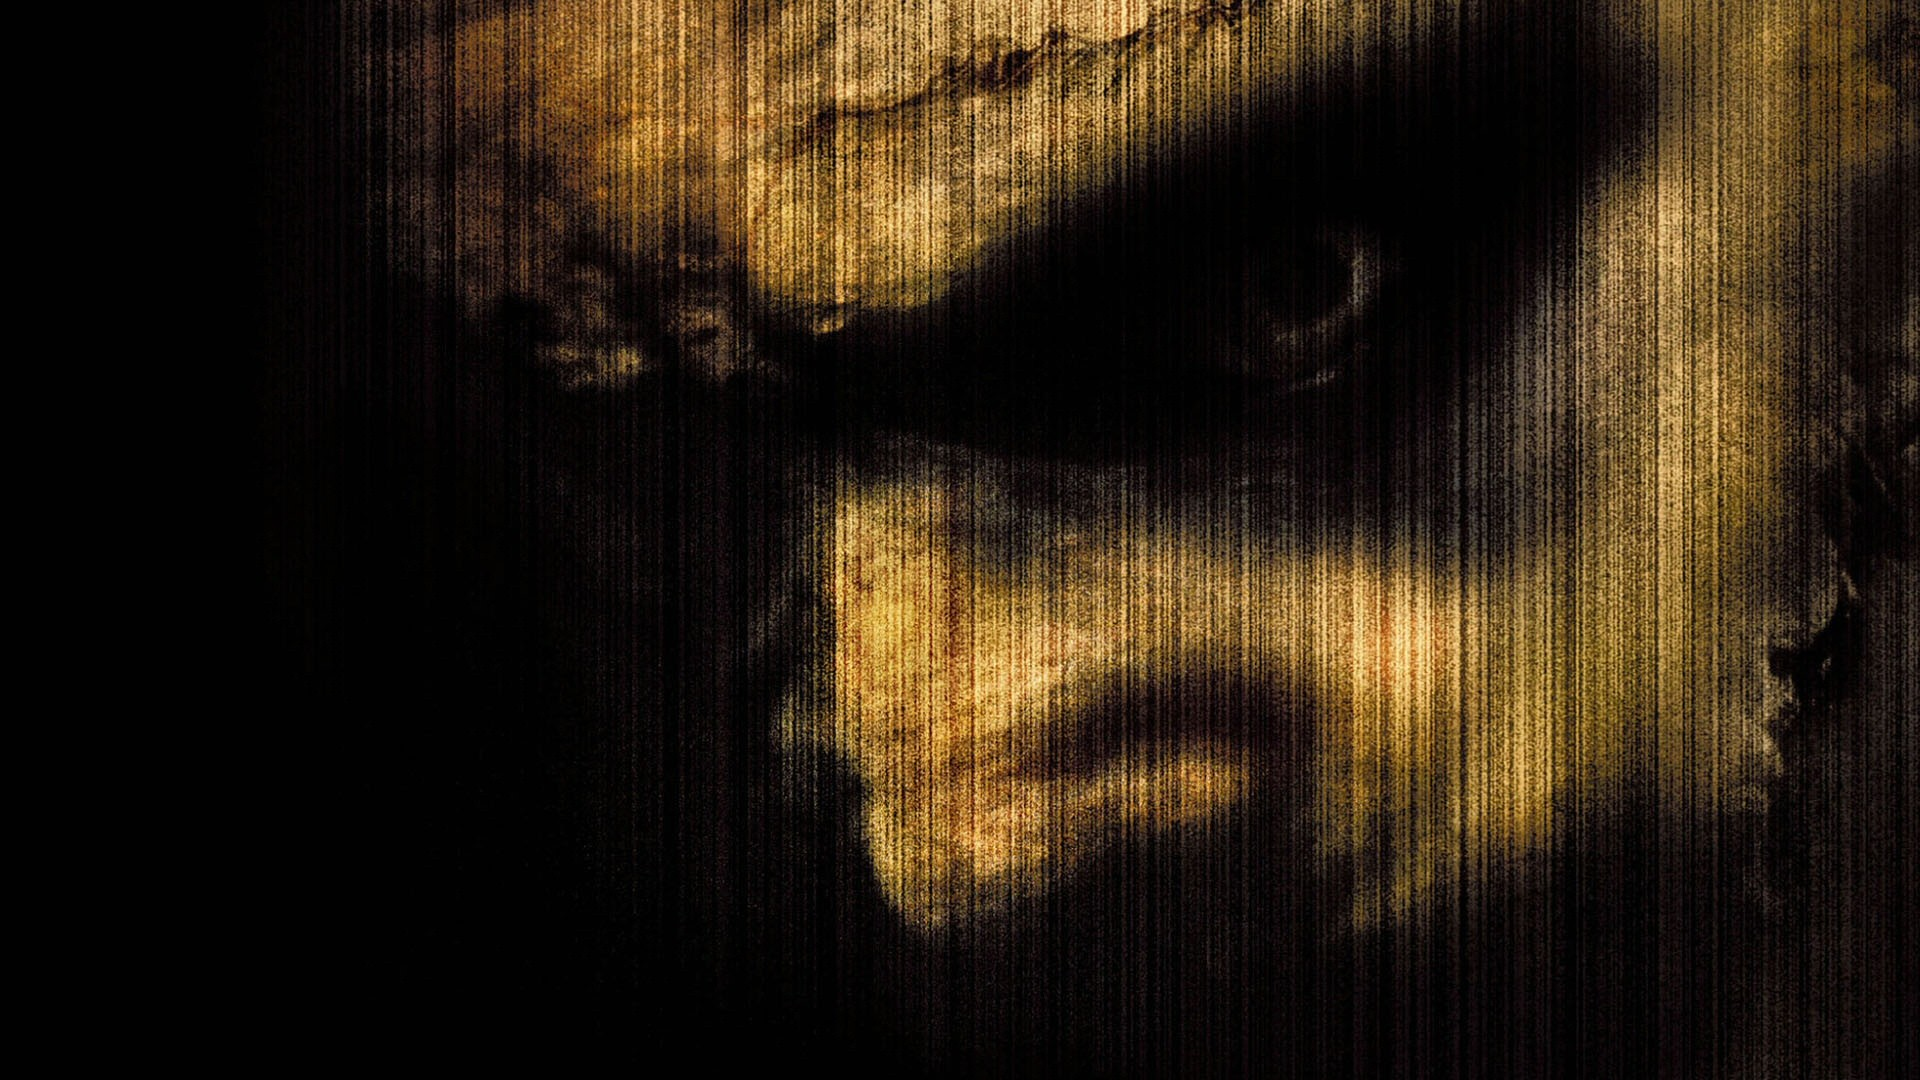 Texas Chainsaw Massacre Wallpapers, Poster, Movie Wallpaper